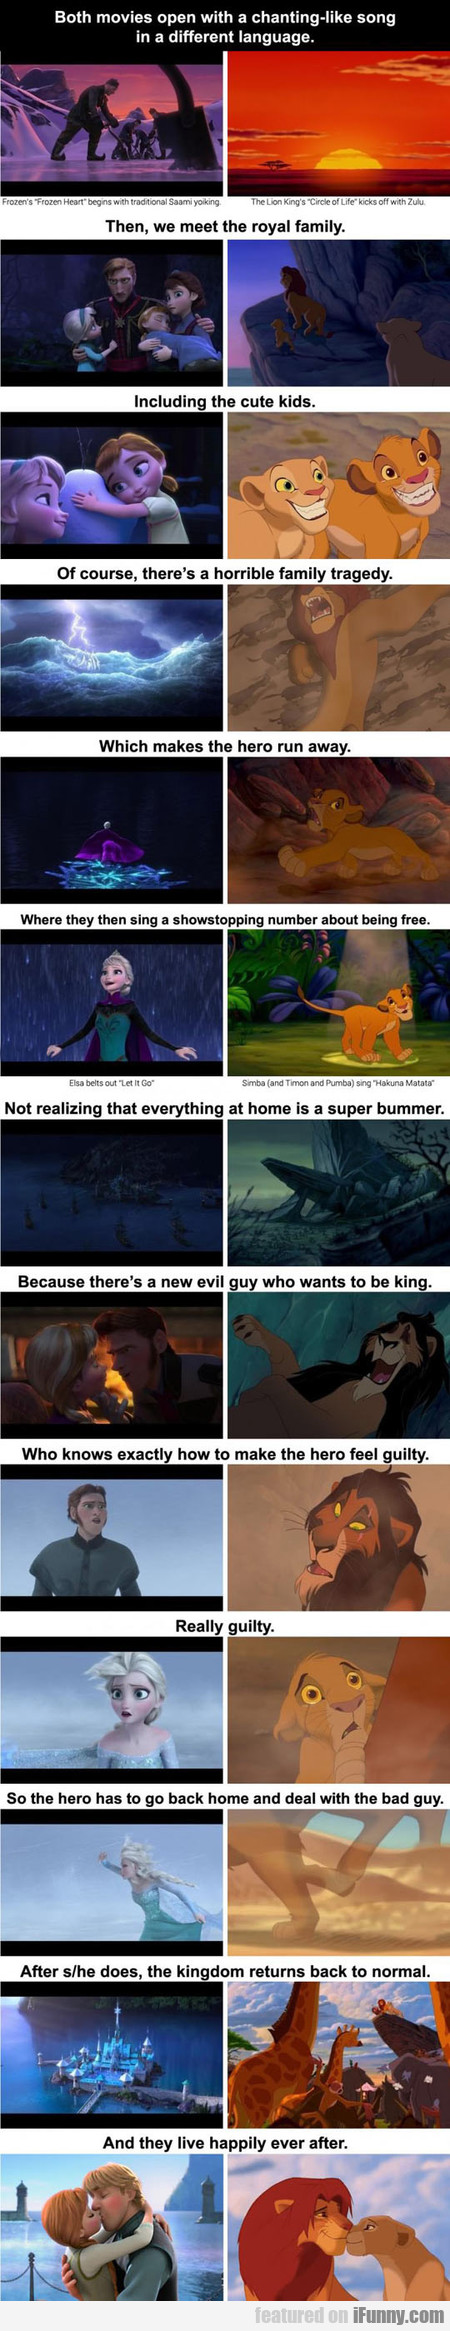 Frozen And The Lion King Are The Same Movie?